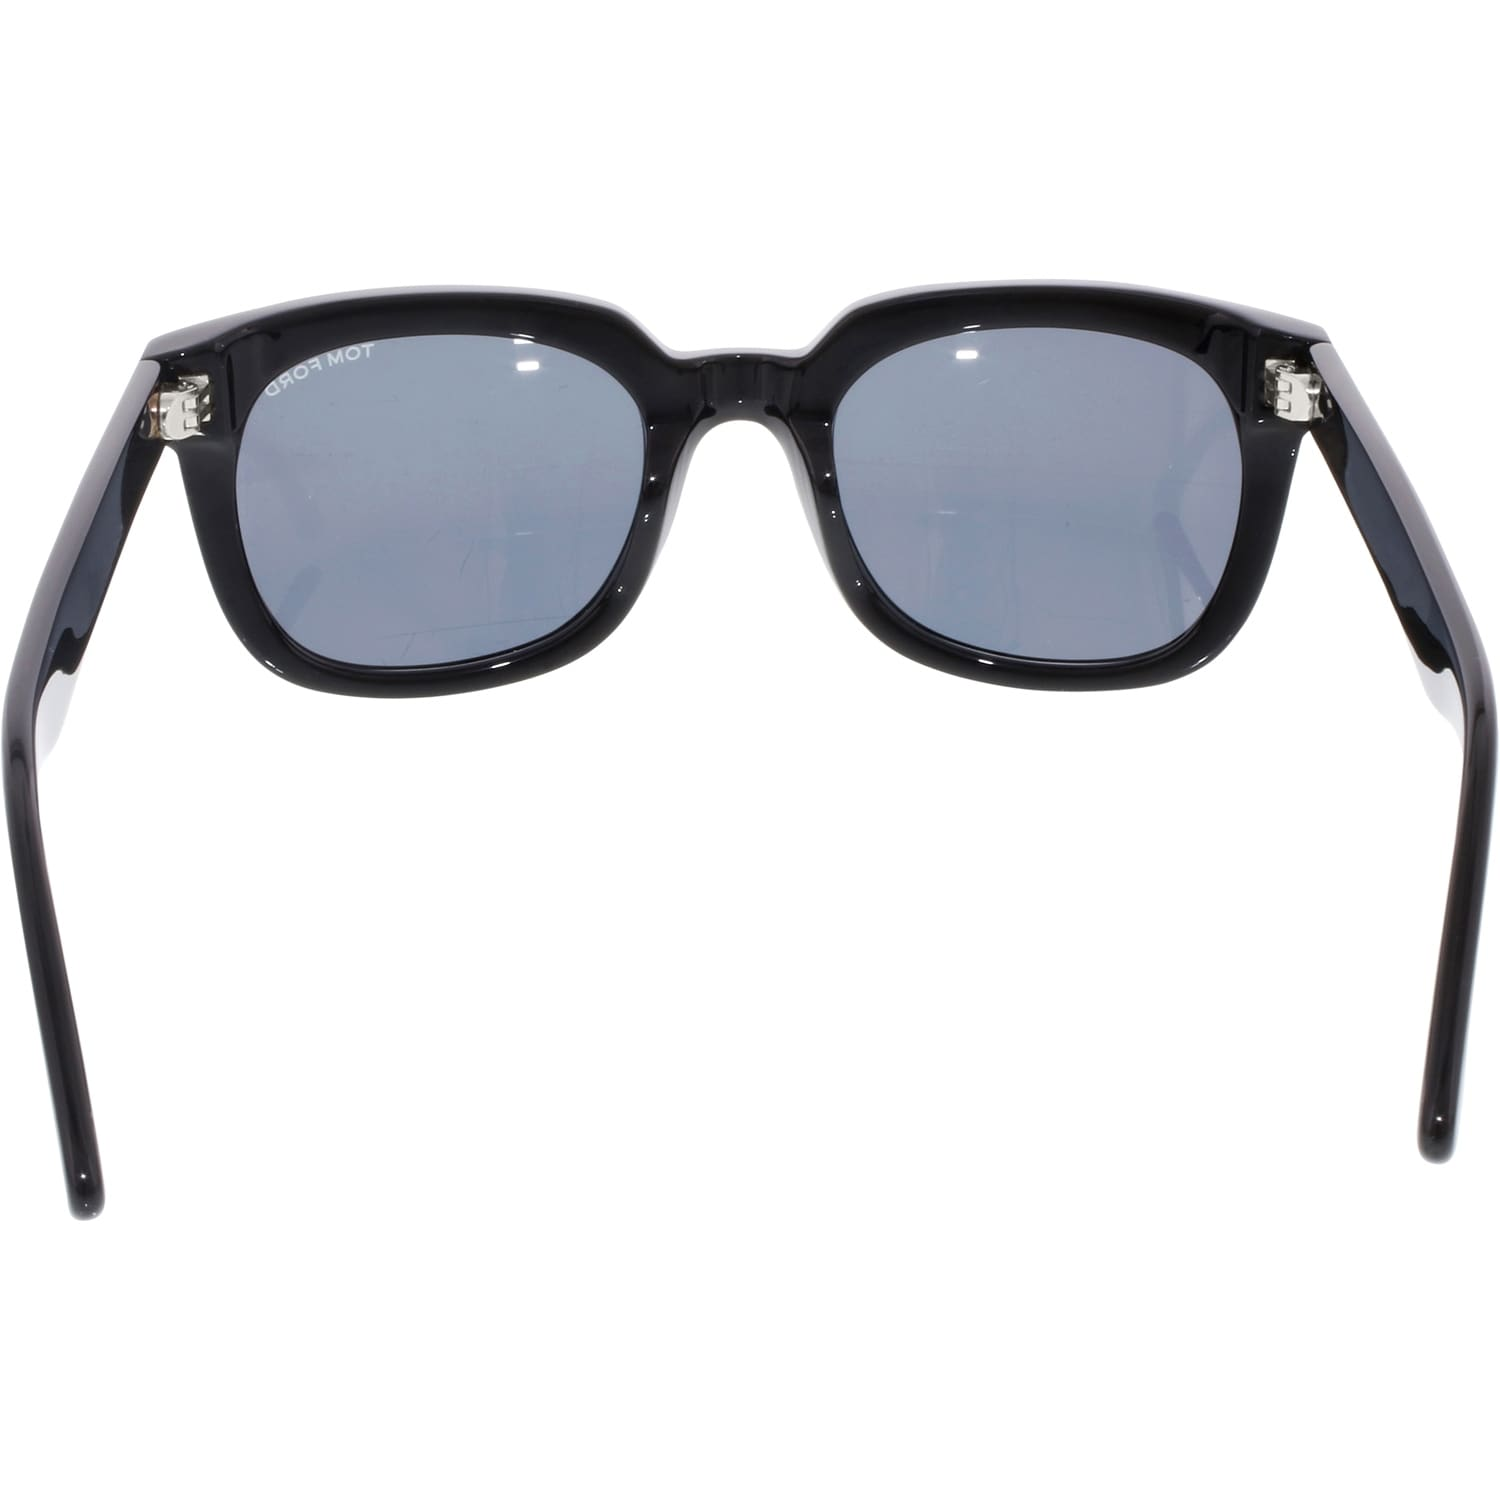 869a97668f22b Shop Tom Ford Women s Campbell FT0198-01A-53 Black Square Sunglasses - Free  Shipping Today - Overstock - 18901393